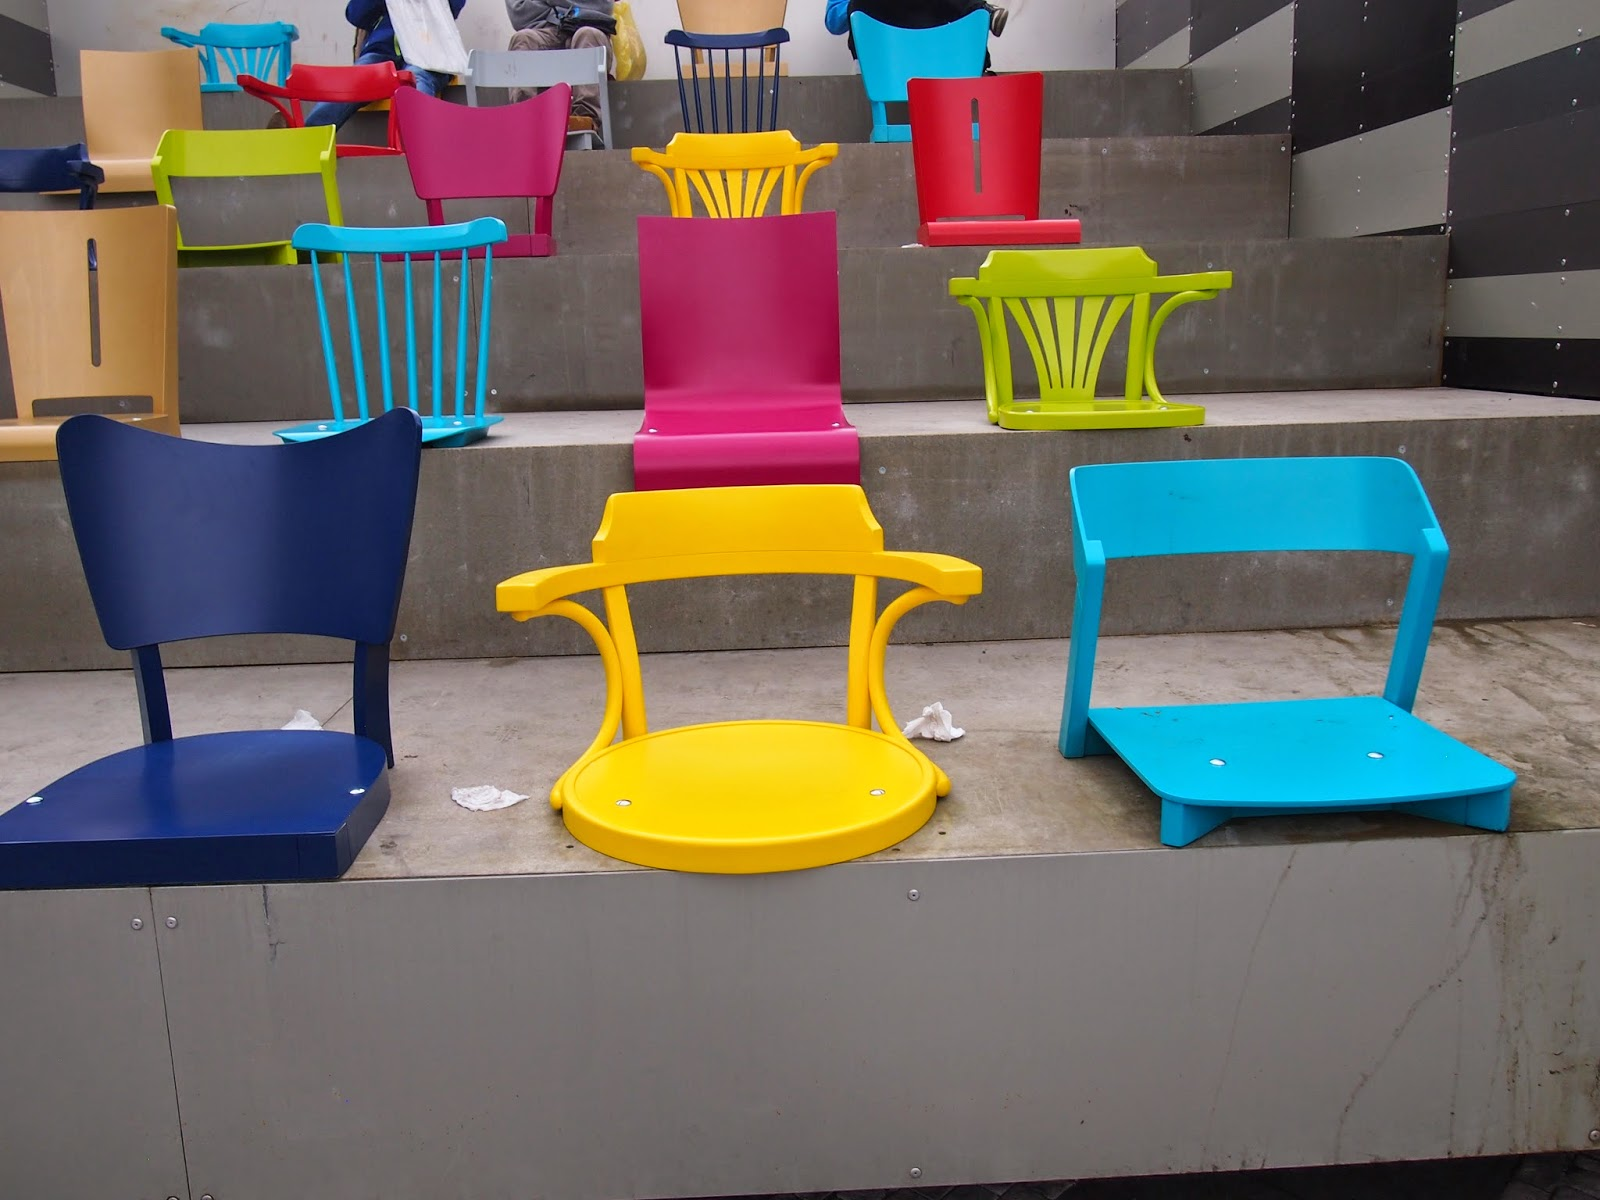 An art installment of colorful chairs in Prague